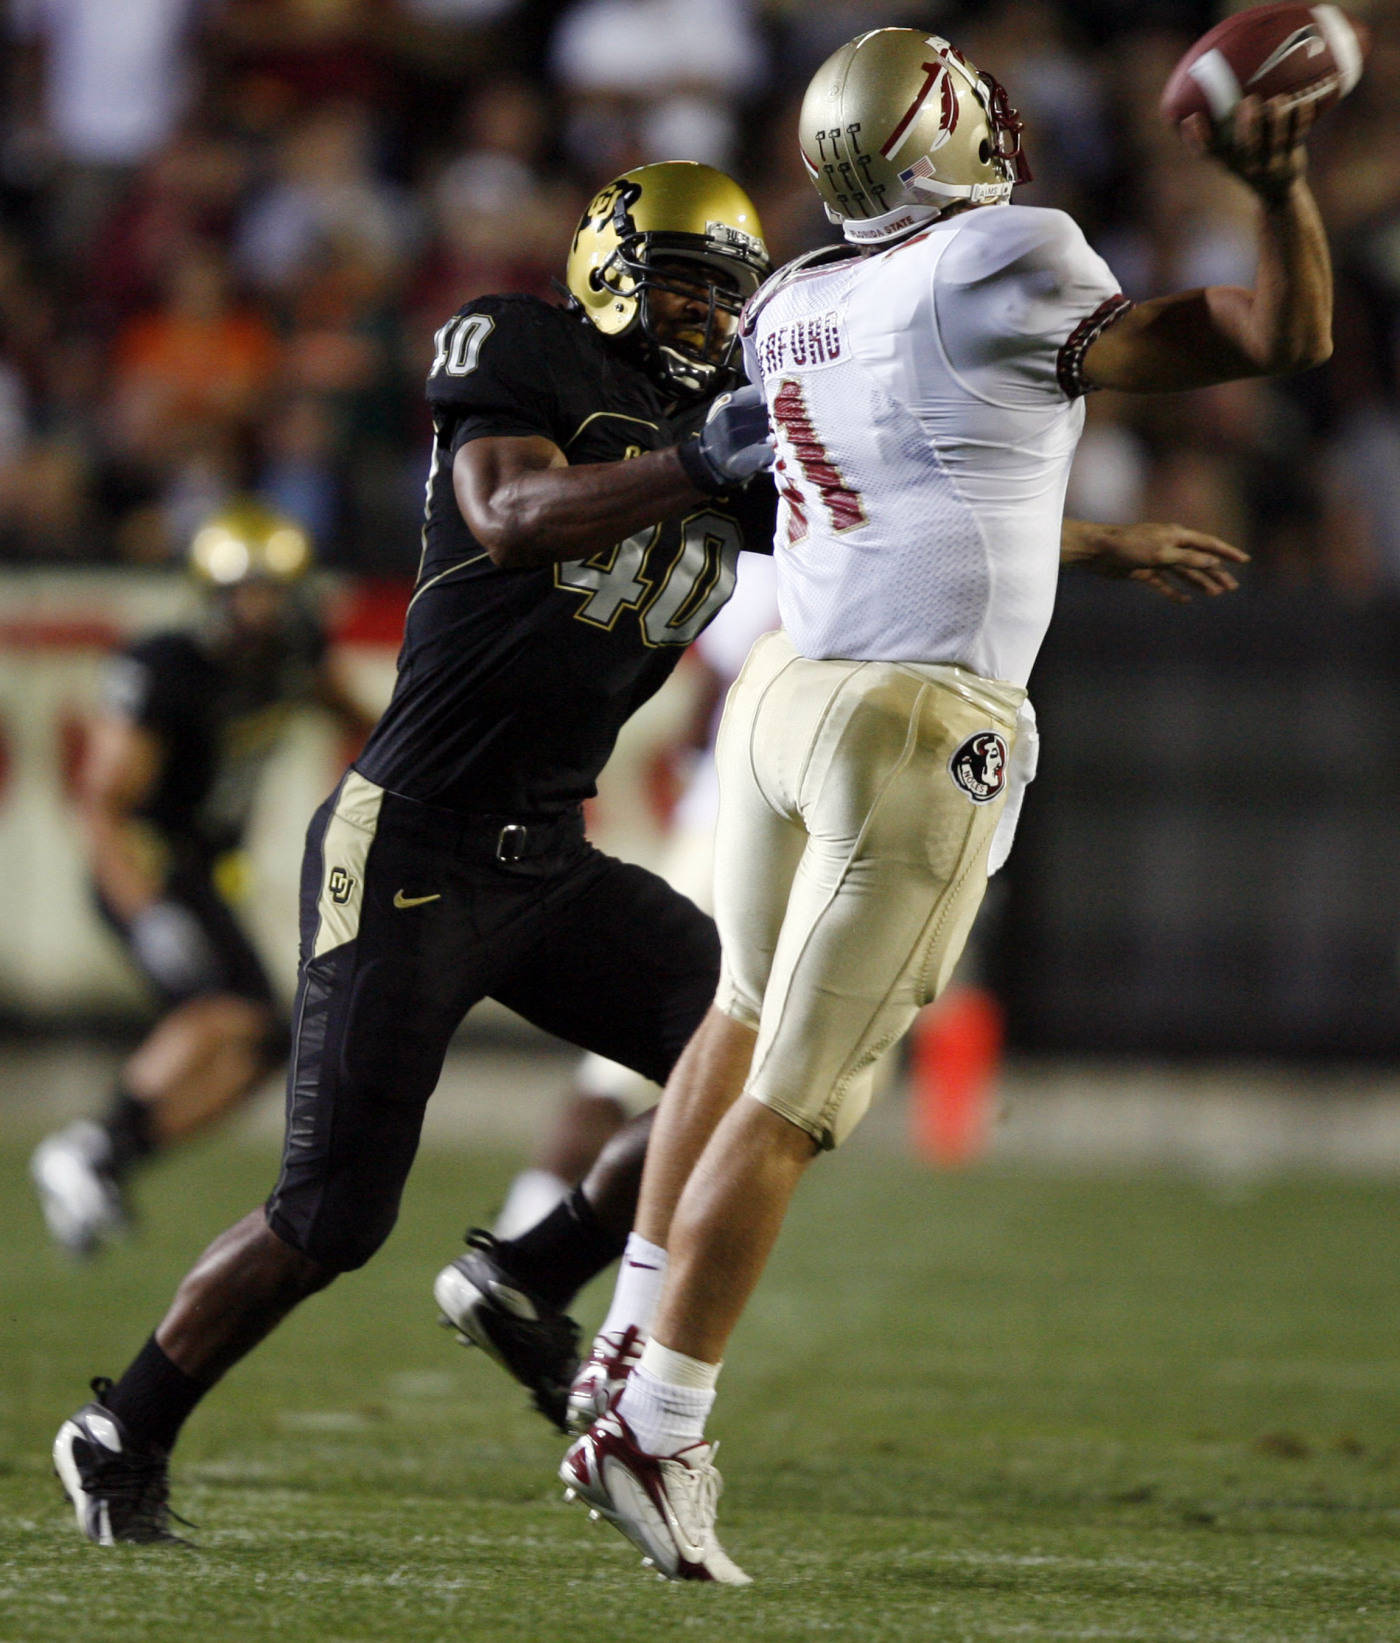 Colorado linebacker Brad Jones, left, reaches out to tackle Florida State quarterback Drew Weatherford as he tries to throw a pass in the first quarter. (AP Photo/David Zalubowski)